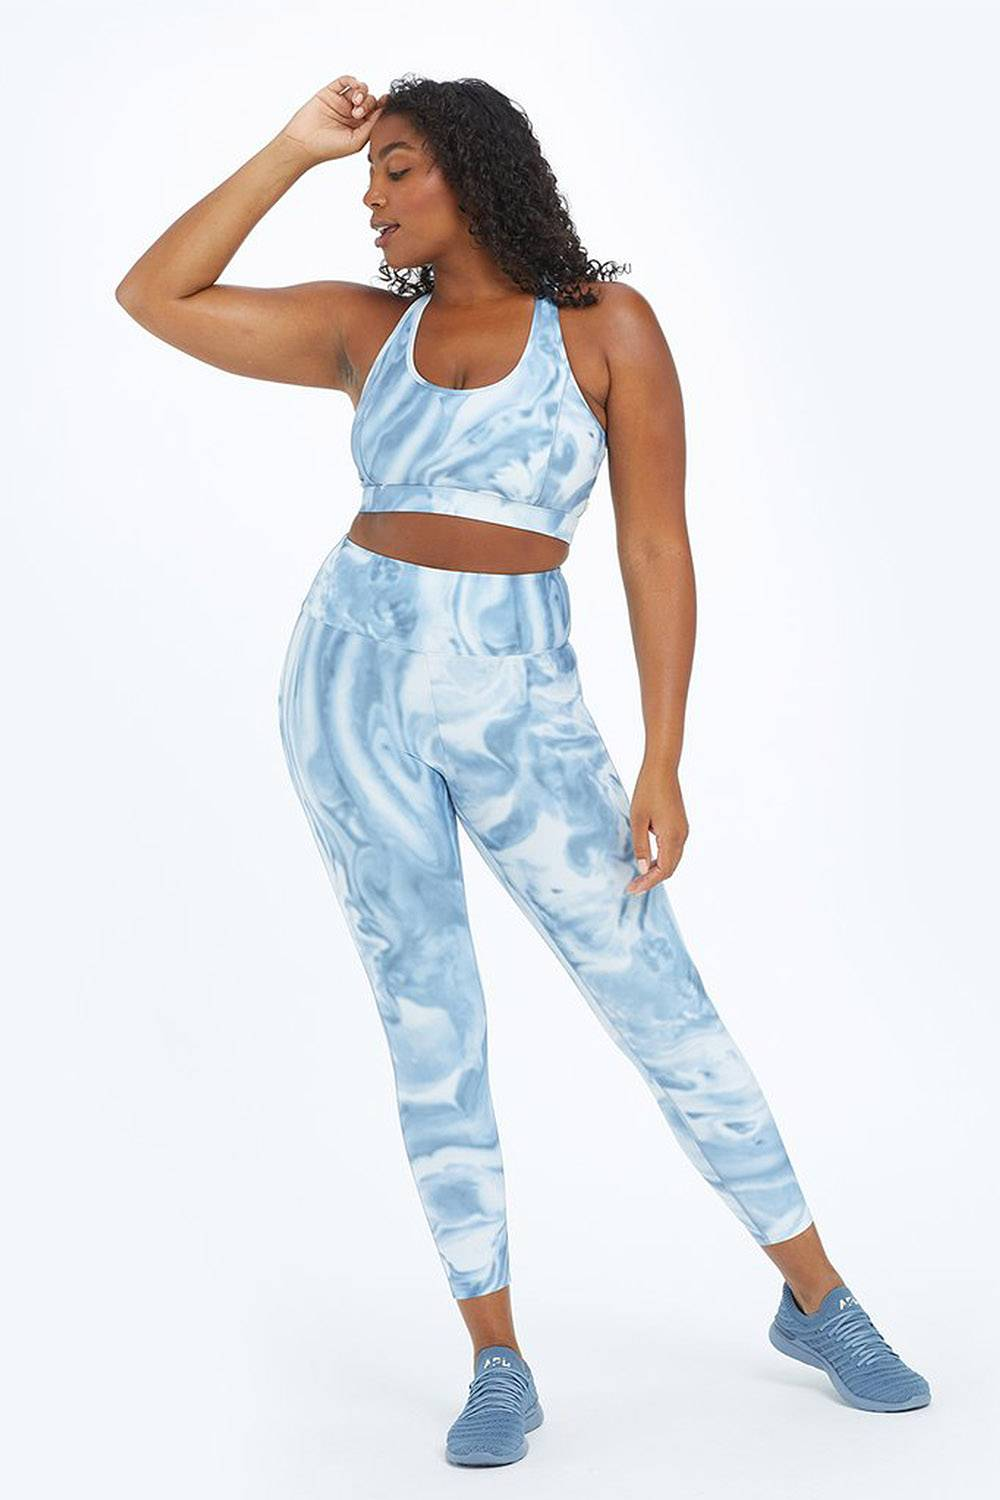 summersalt affordable plus size workout clothing